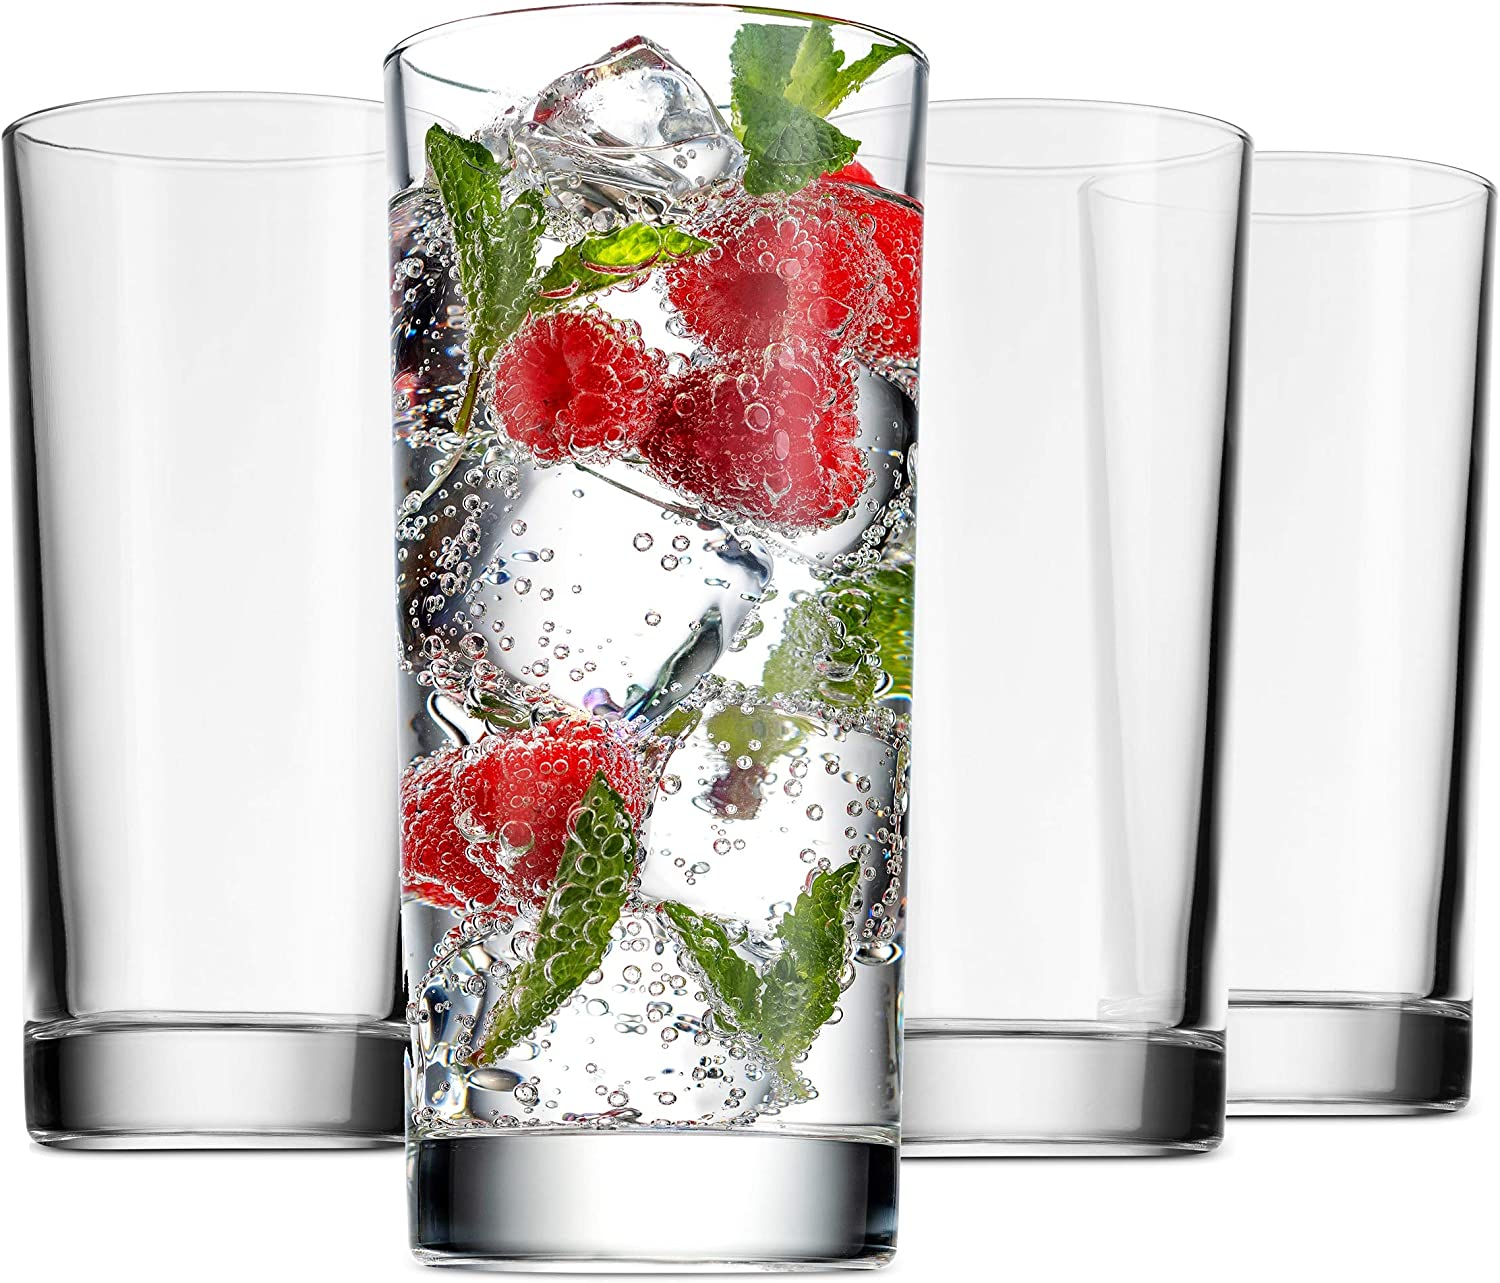 Godinger Highball Glasses, Italian Made Glass Tall Beverage Cups - 14oz, Set of 4